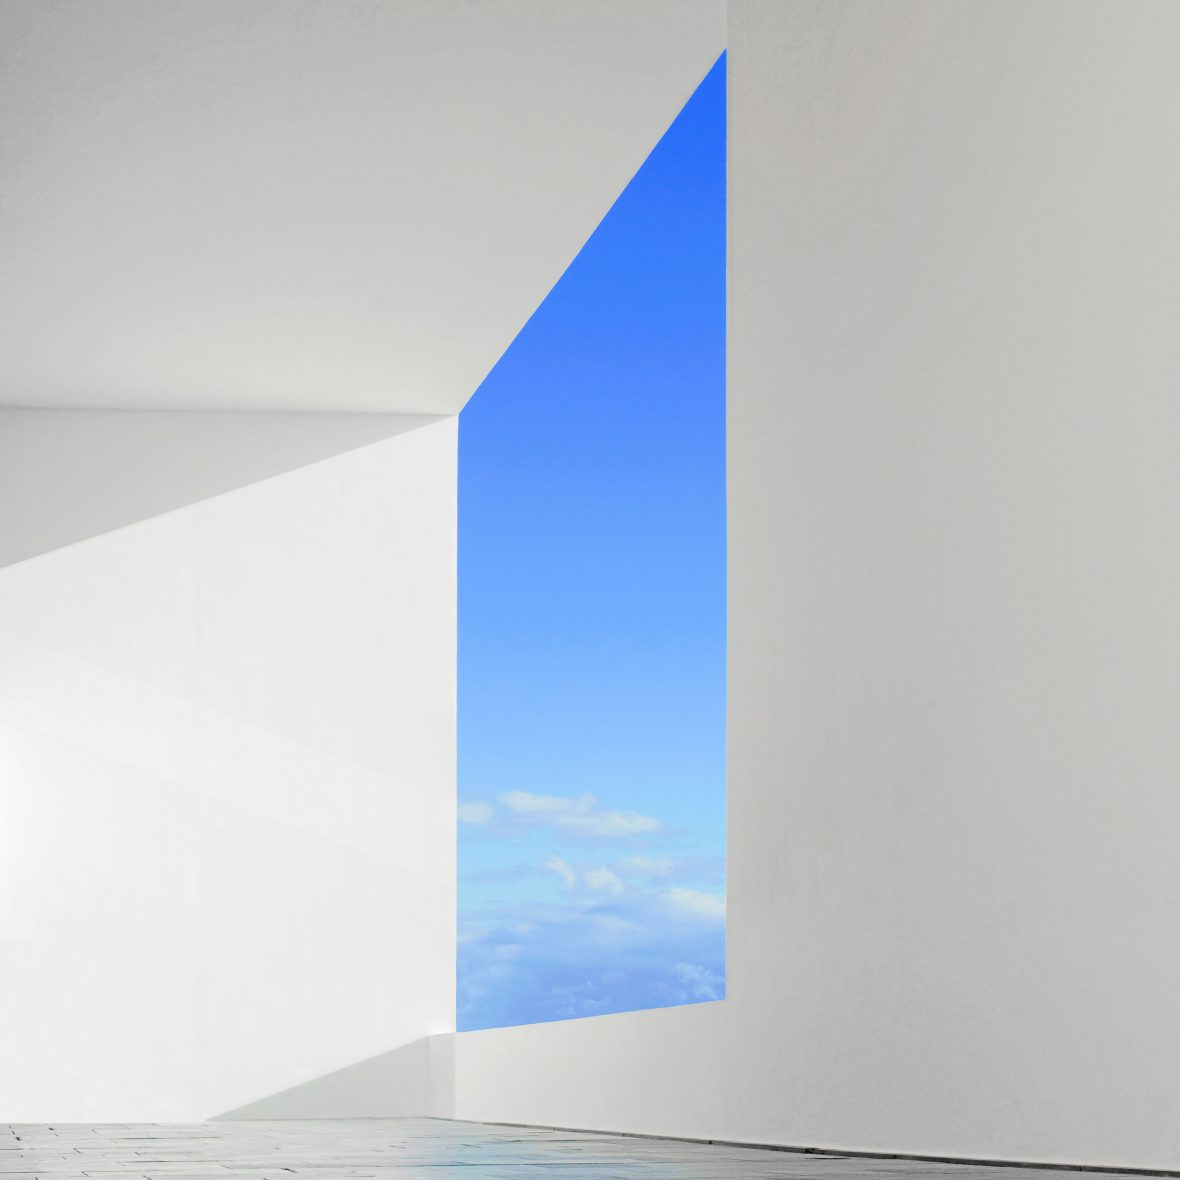 A window on the world: Taken near the coastal village and beach of Bolonia in Andalusia, Spain.